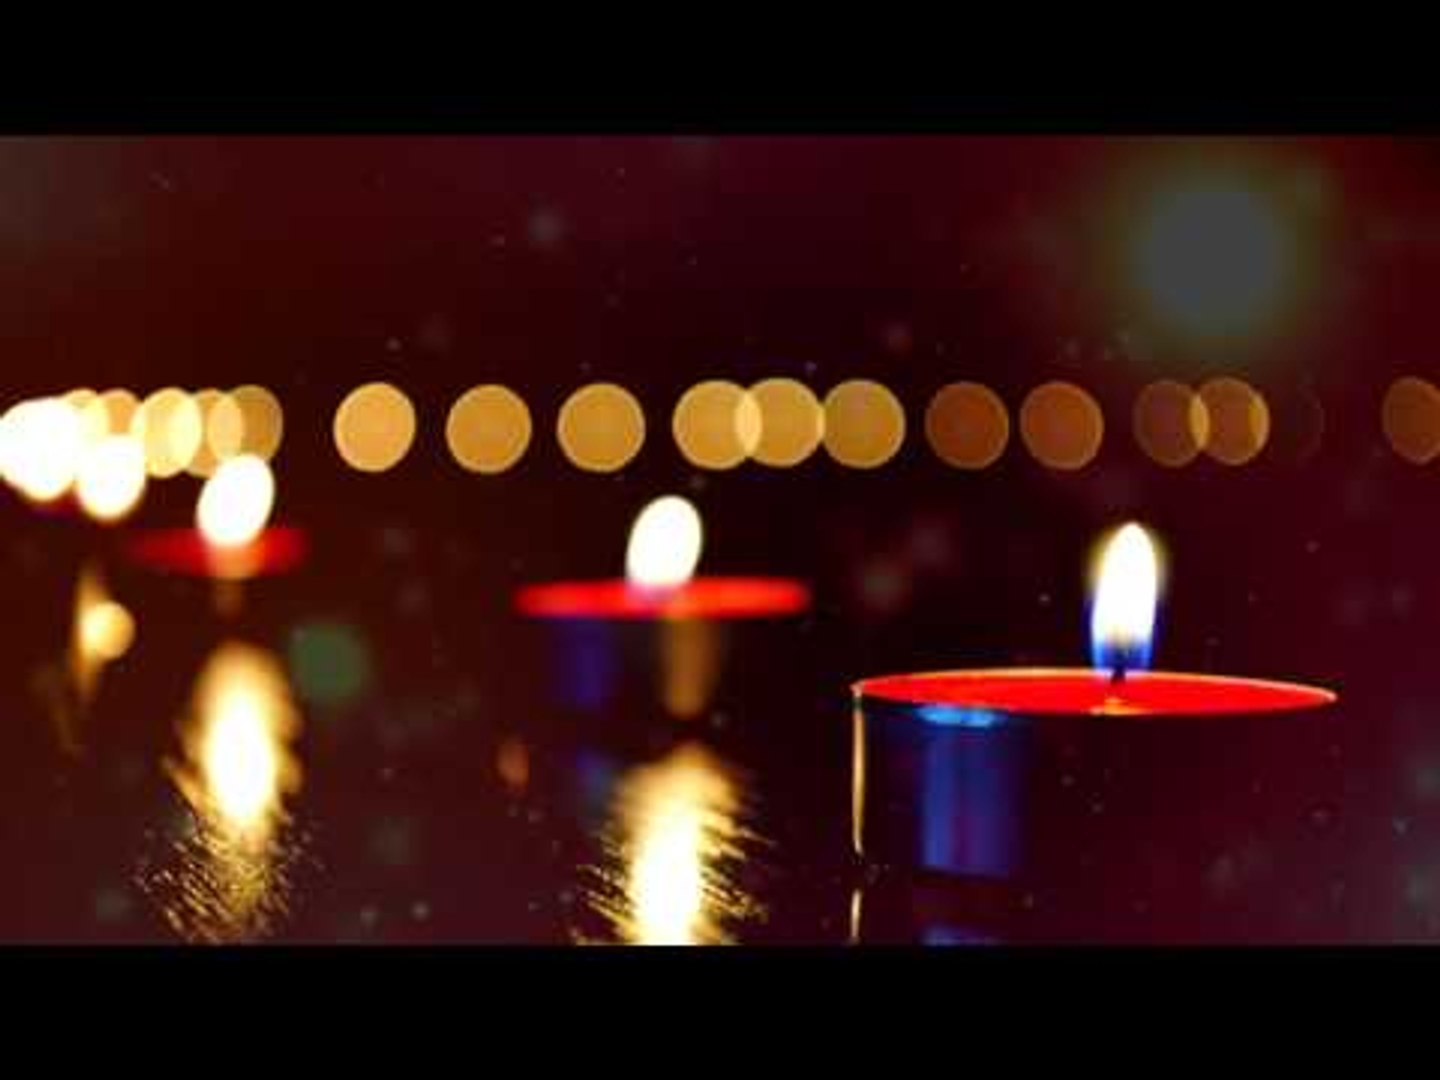 1 Hour Super Relaxing Spa Music, Meditation Music, Massage Music, Background Music, Relaxing Music